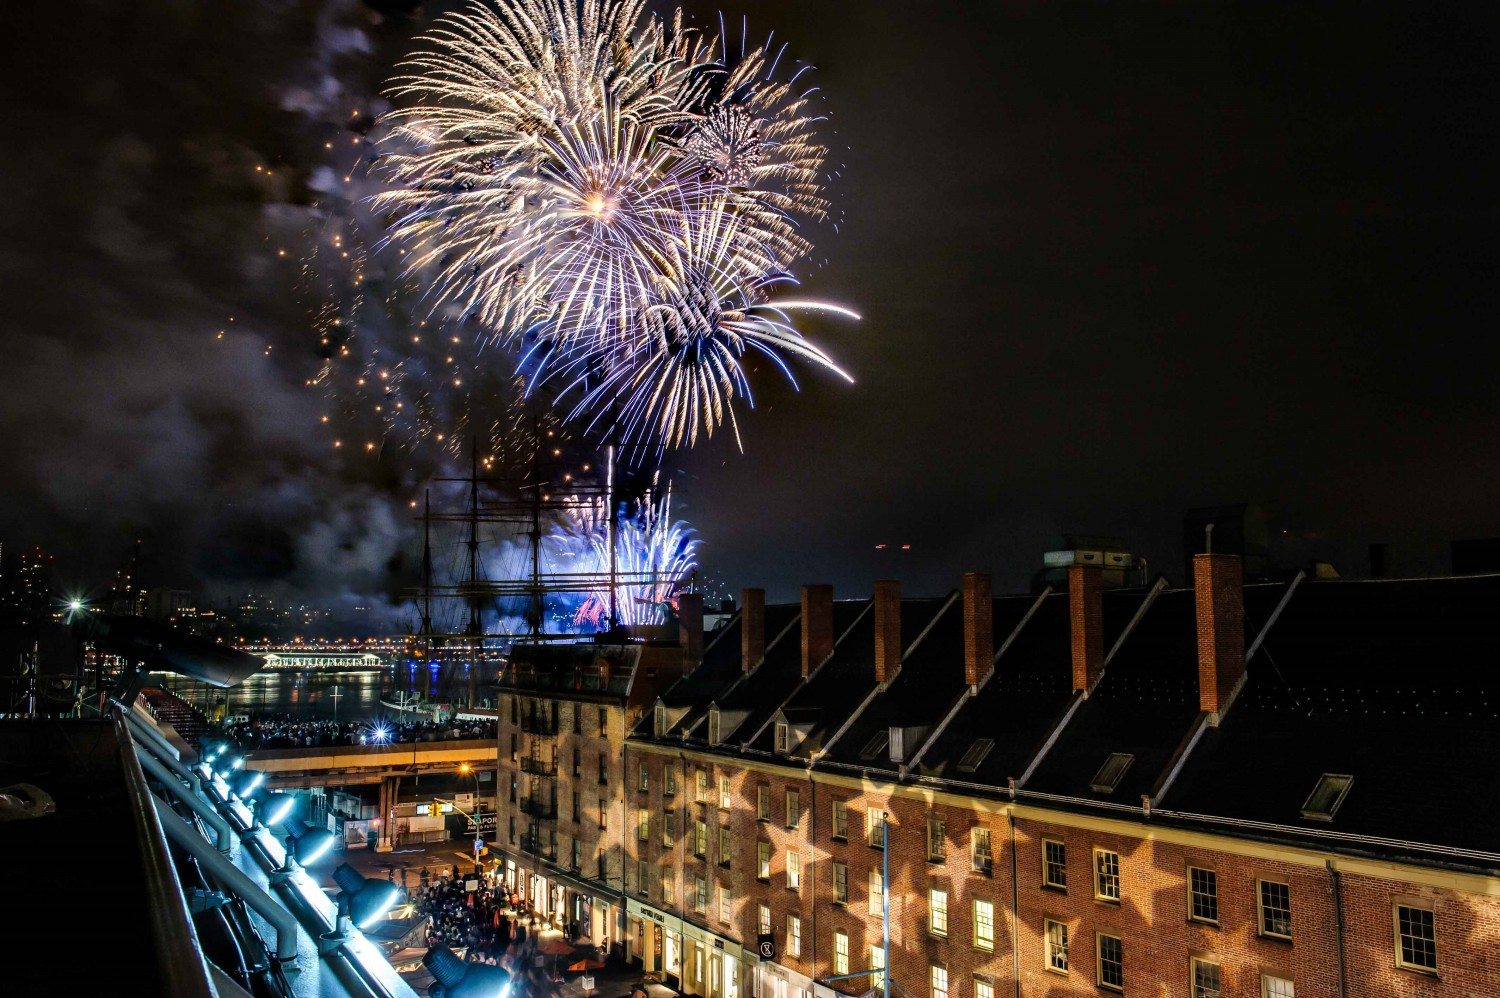 South Street Seaport GM Phillip St. Pierre on Jul. 3 & 4's Festival Of Independence, 4Knots on Jul. 9, VICE, and more